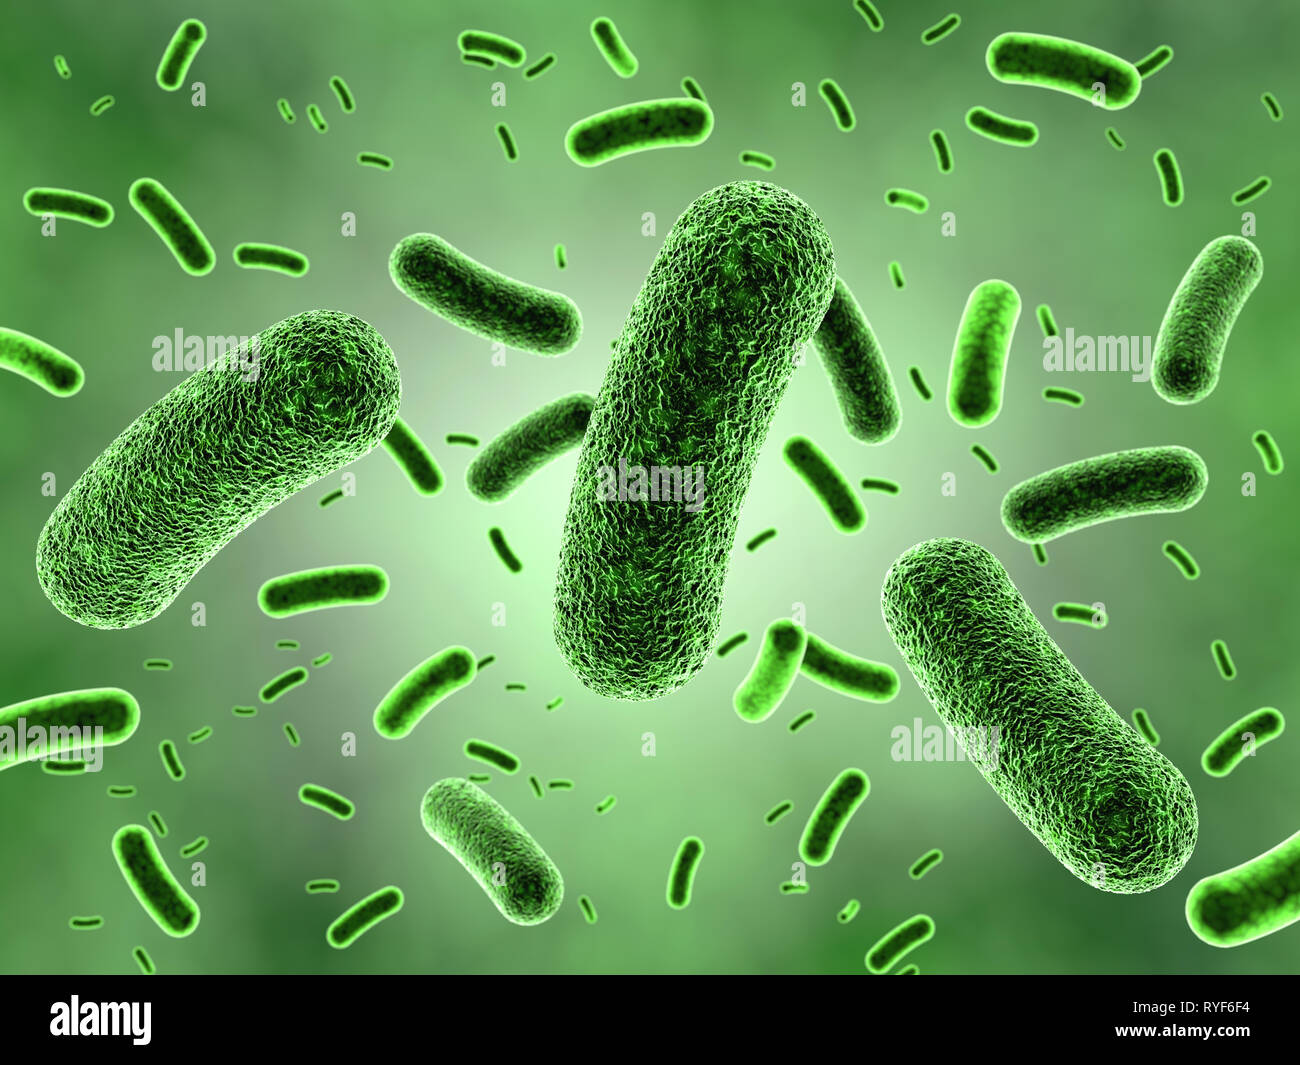 3D illustration of bacteria colony - Stock Image